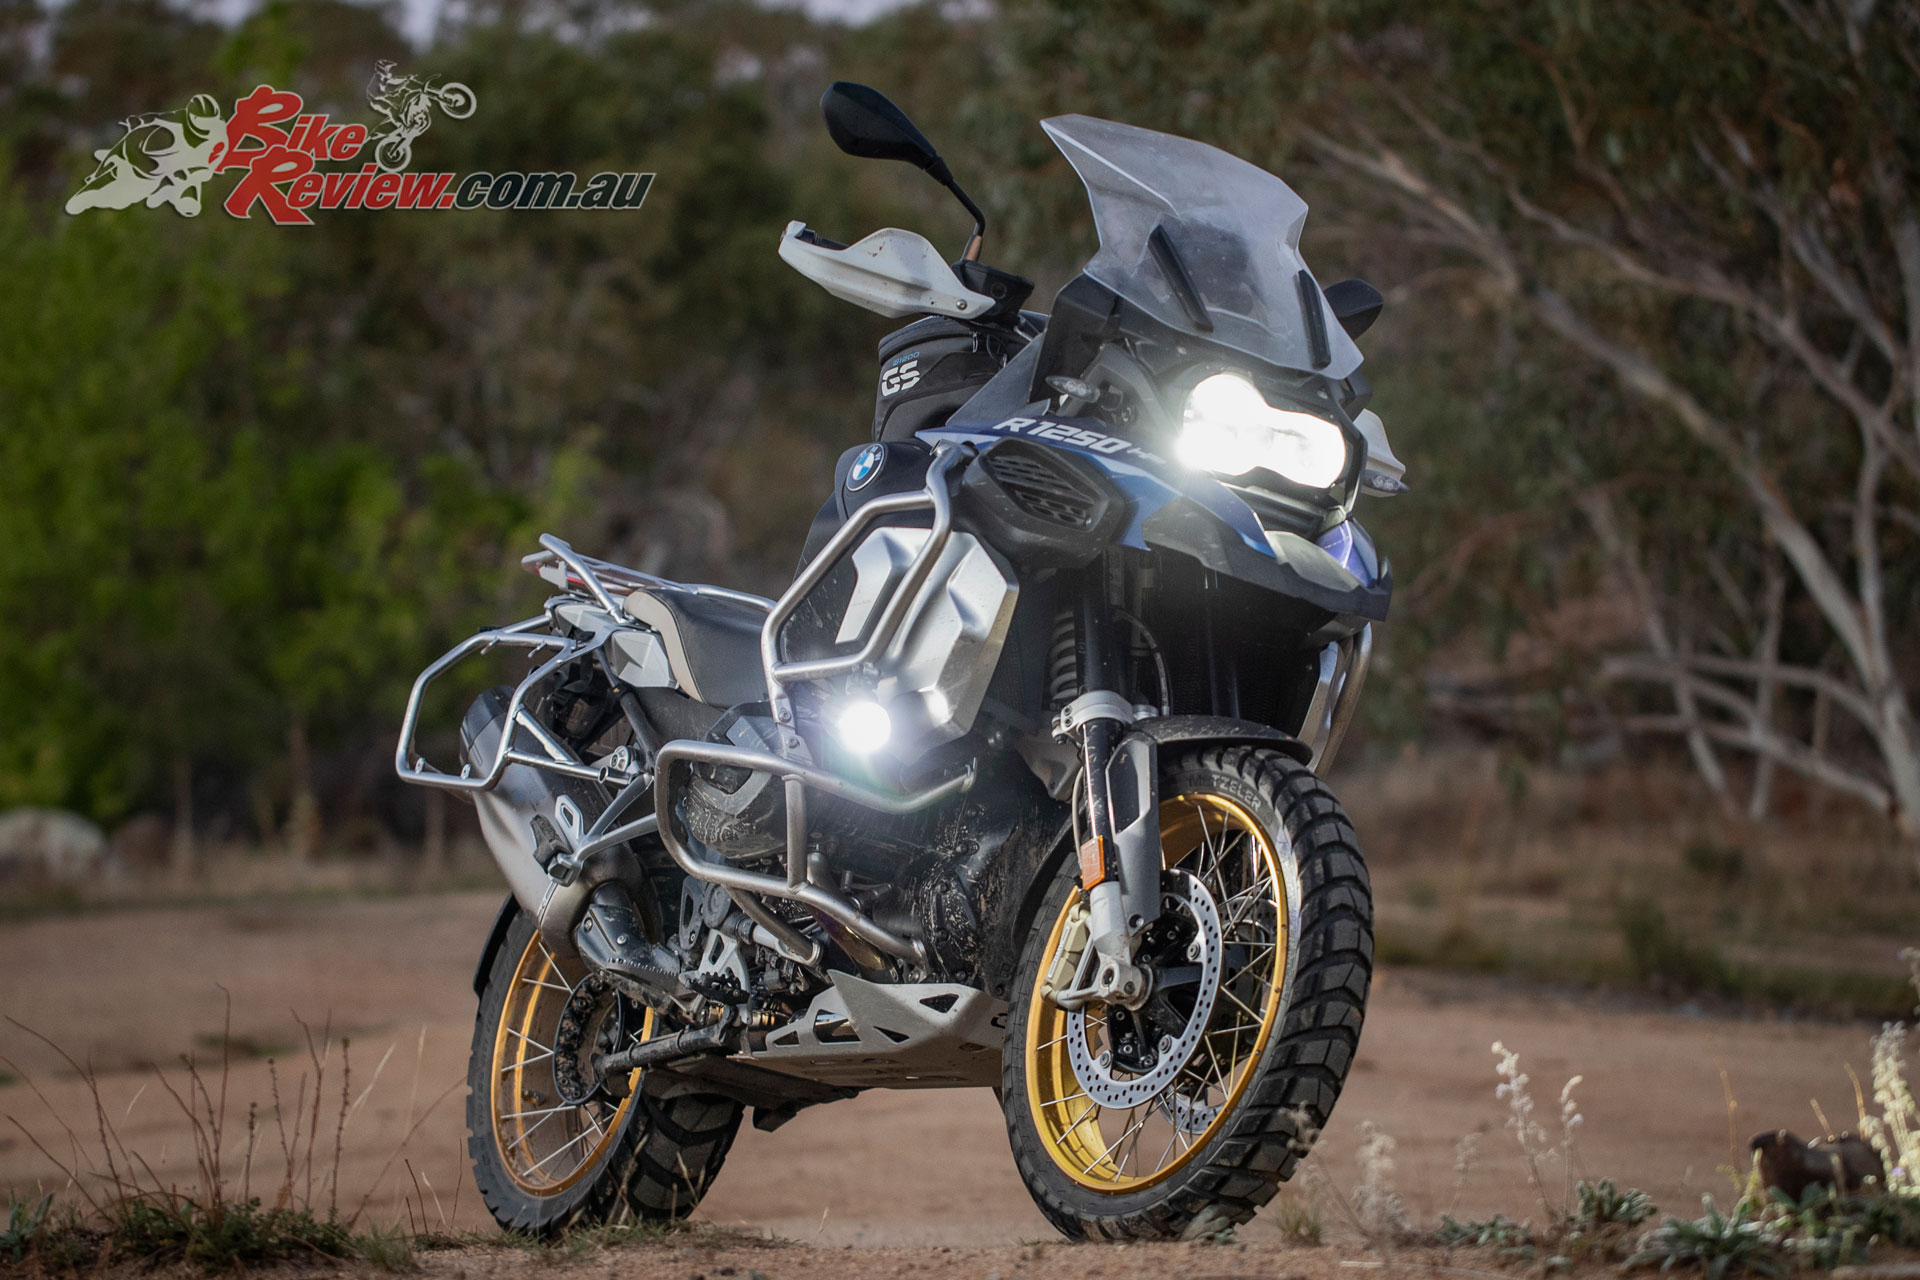 The decked out 2019 BMW R 1250 GS Adventure Rallye X